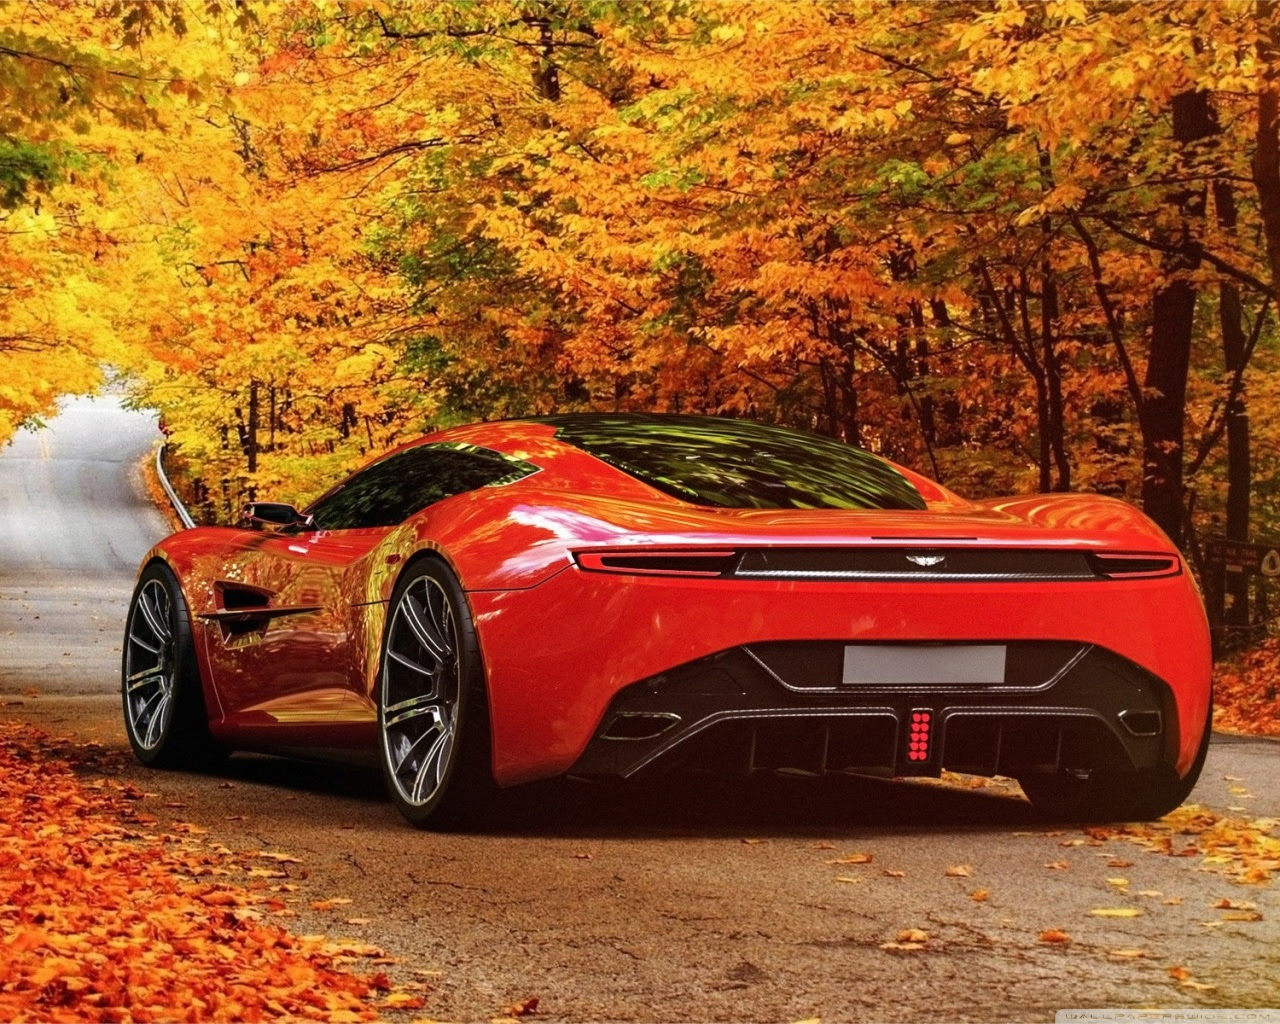 Aston Martin Car Cars Wallpapers All In One Wallpapers